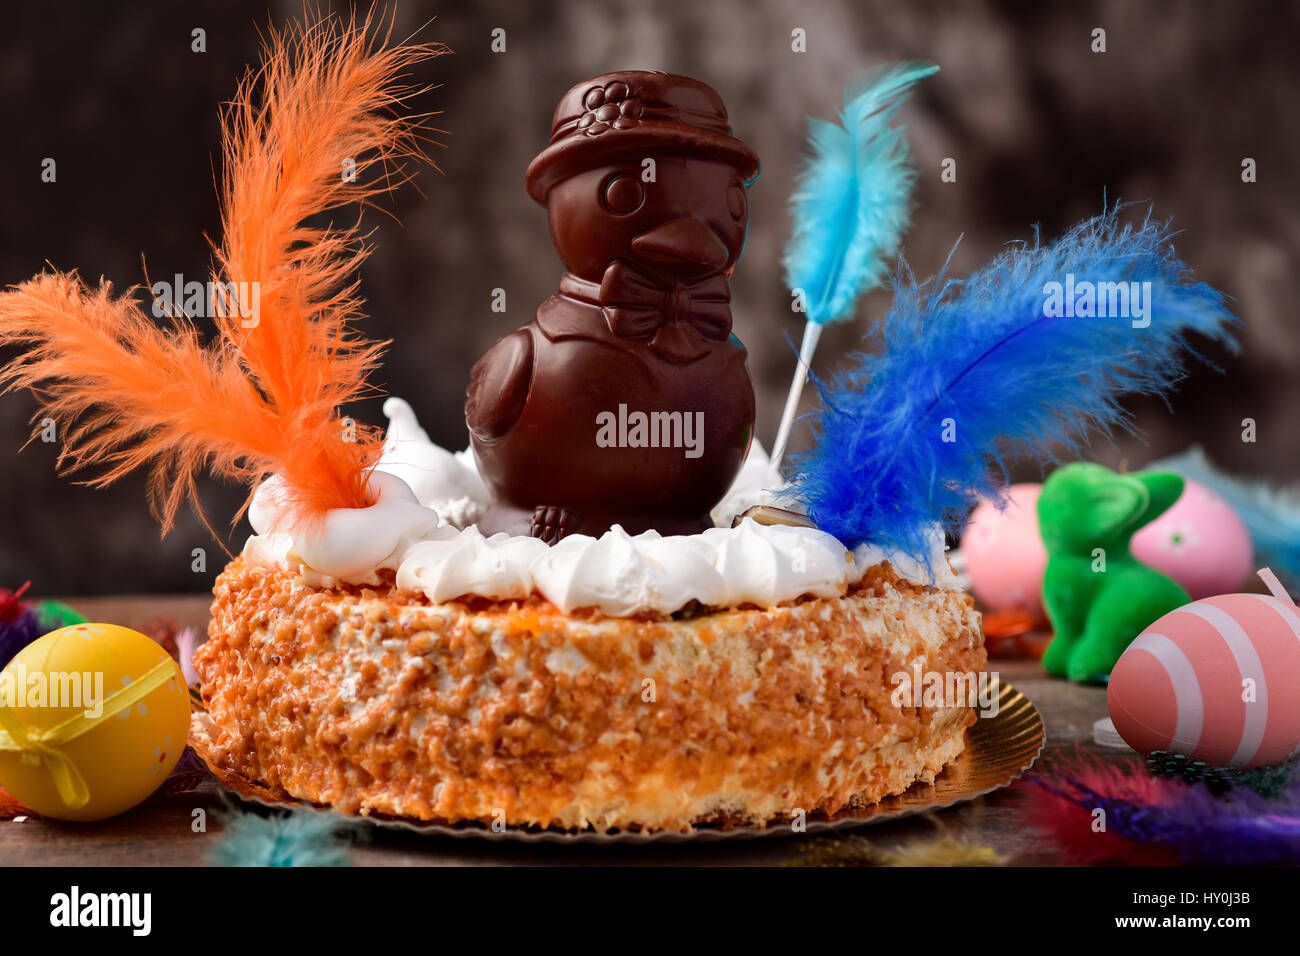 a mona de pascua, a cake eaten in Spain on Easter Monday, topped with a chocolate chick, on a rustic wooden surface Stock Photo